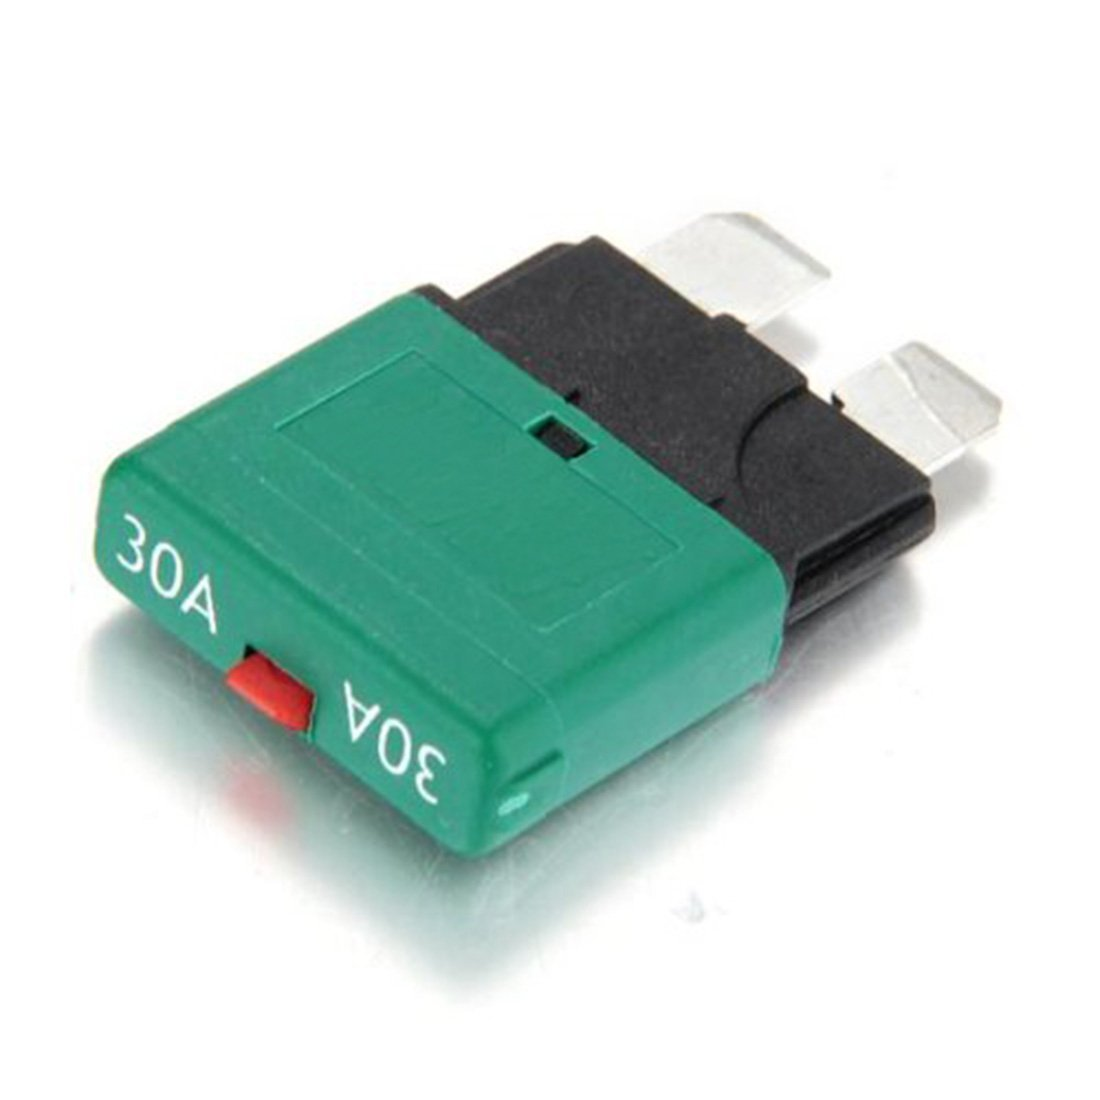 MagiDeal 7 Pieces 28V 5A-30A Auto Marine Resettable Blade Fuse Manual Circuit Breakers